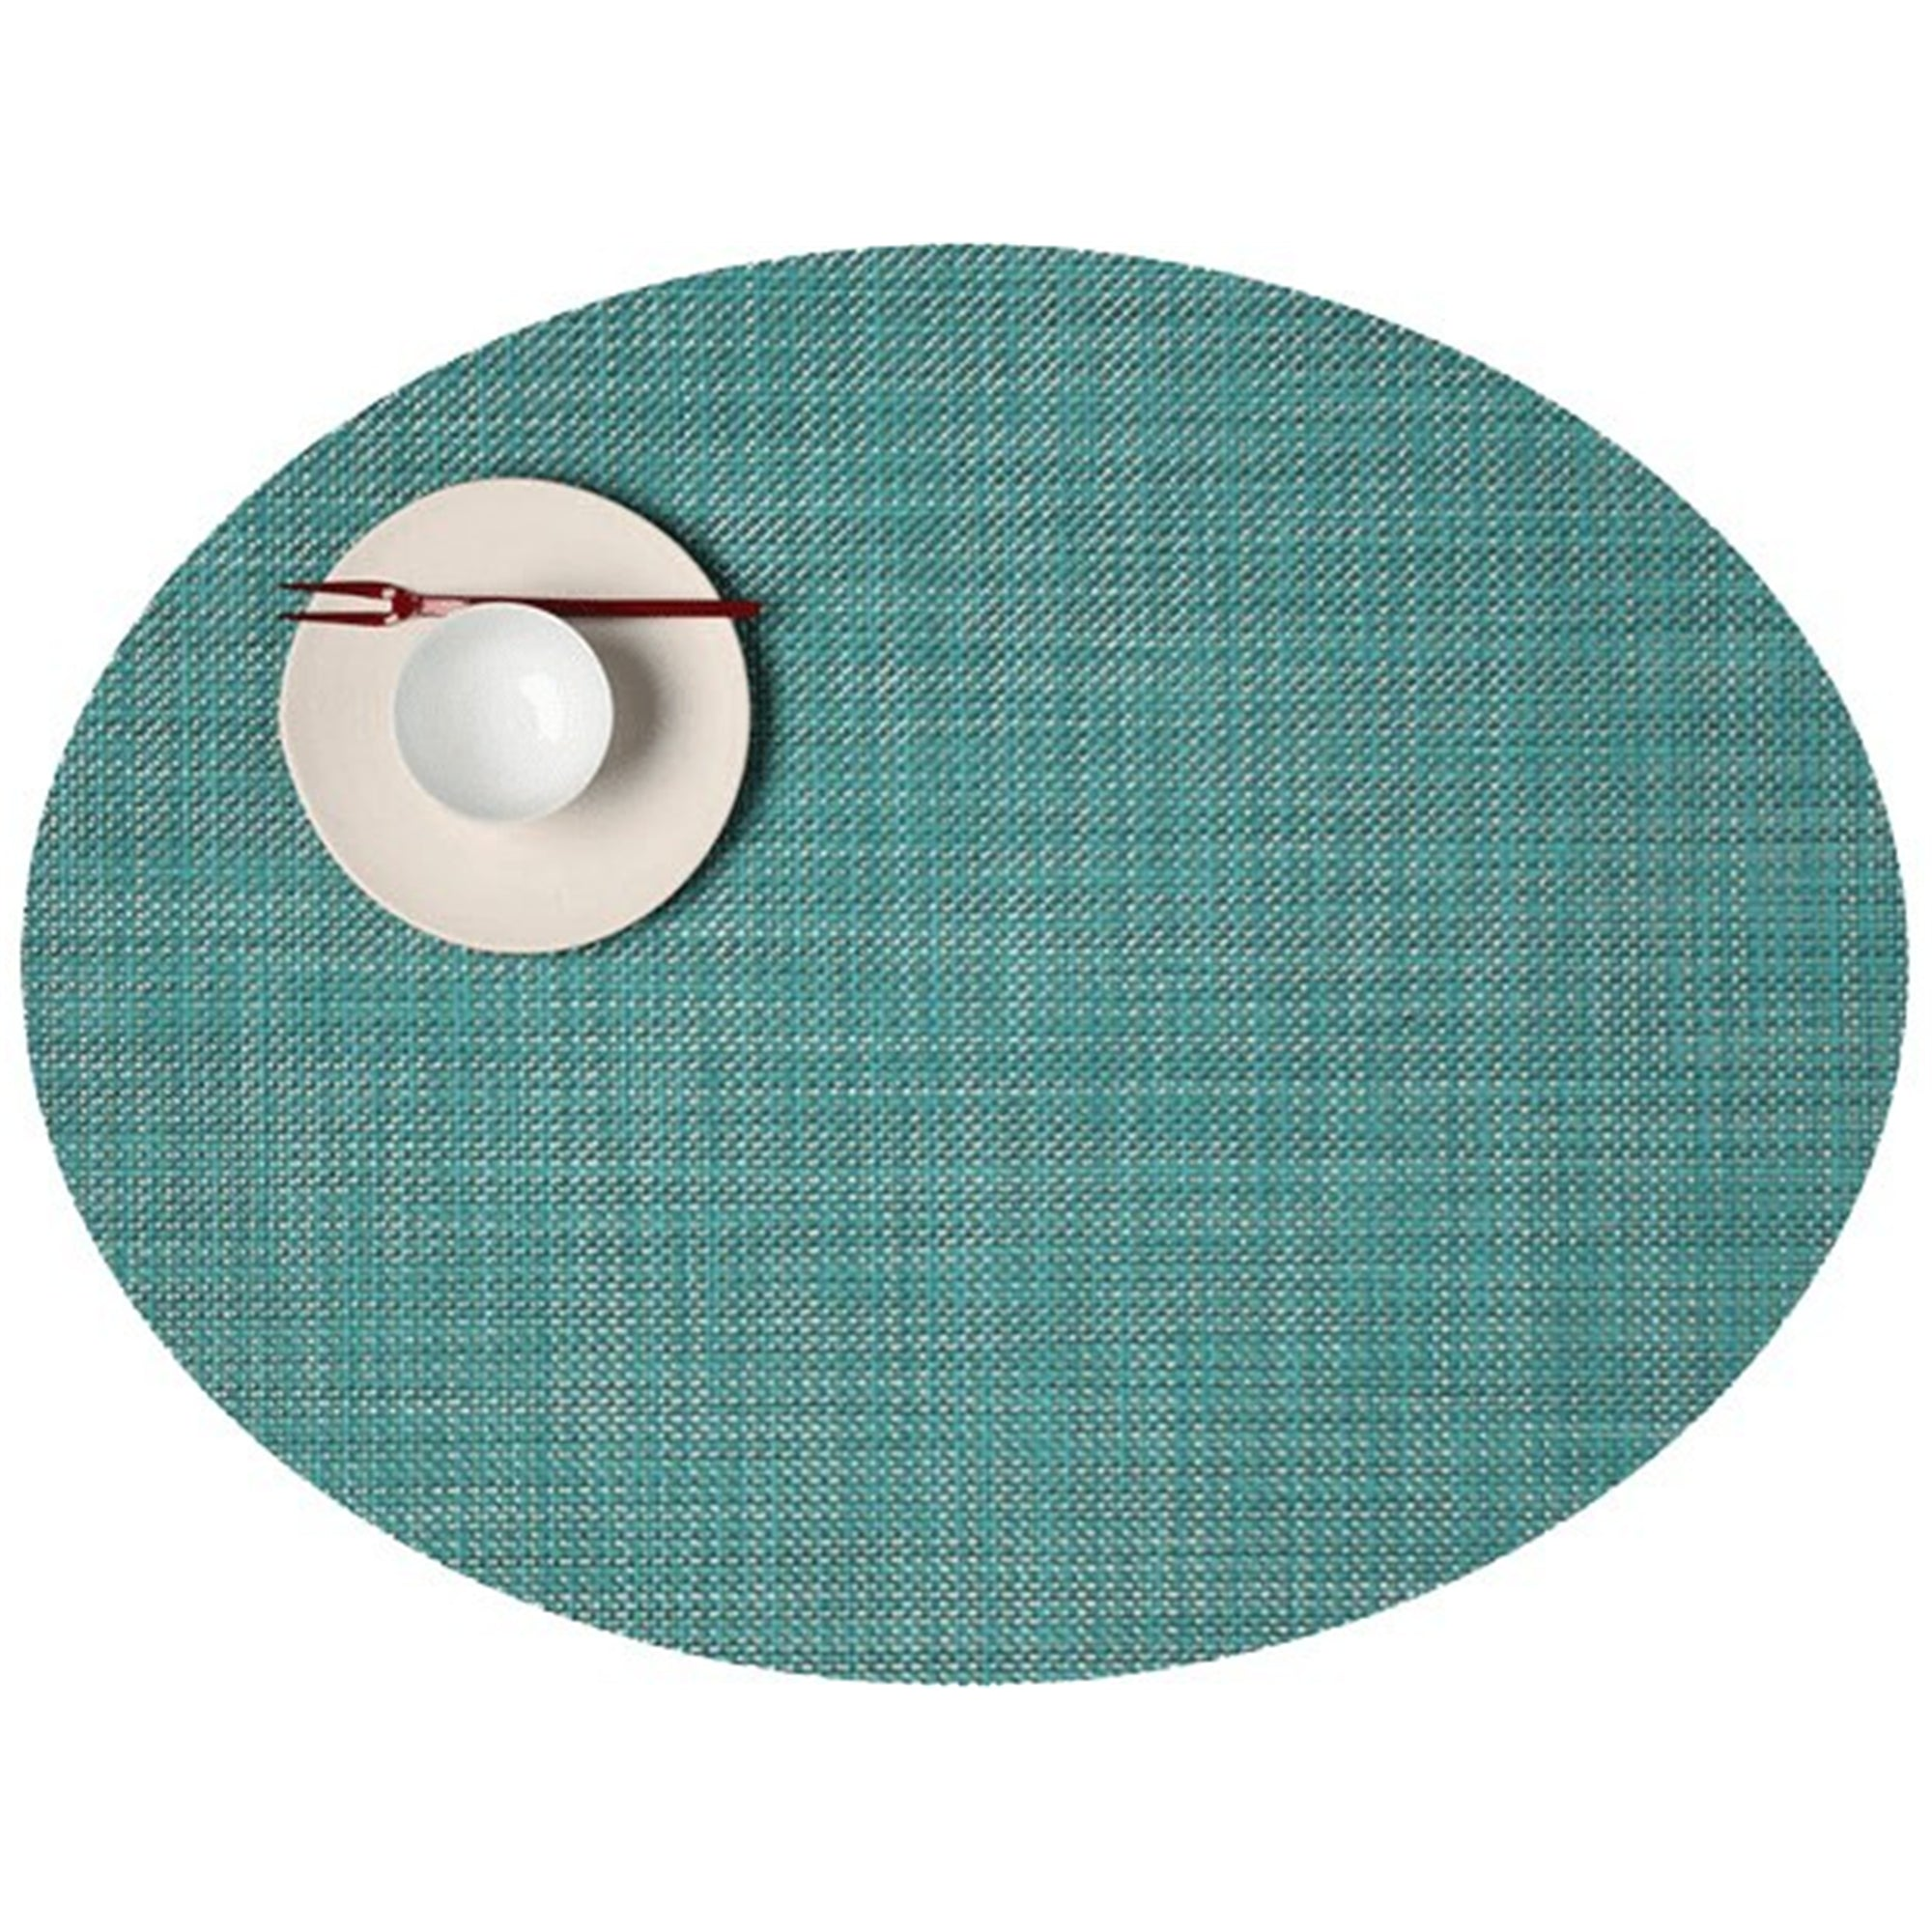 Mini Basketweave Placemats: Oval + Turquoise